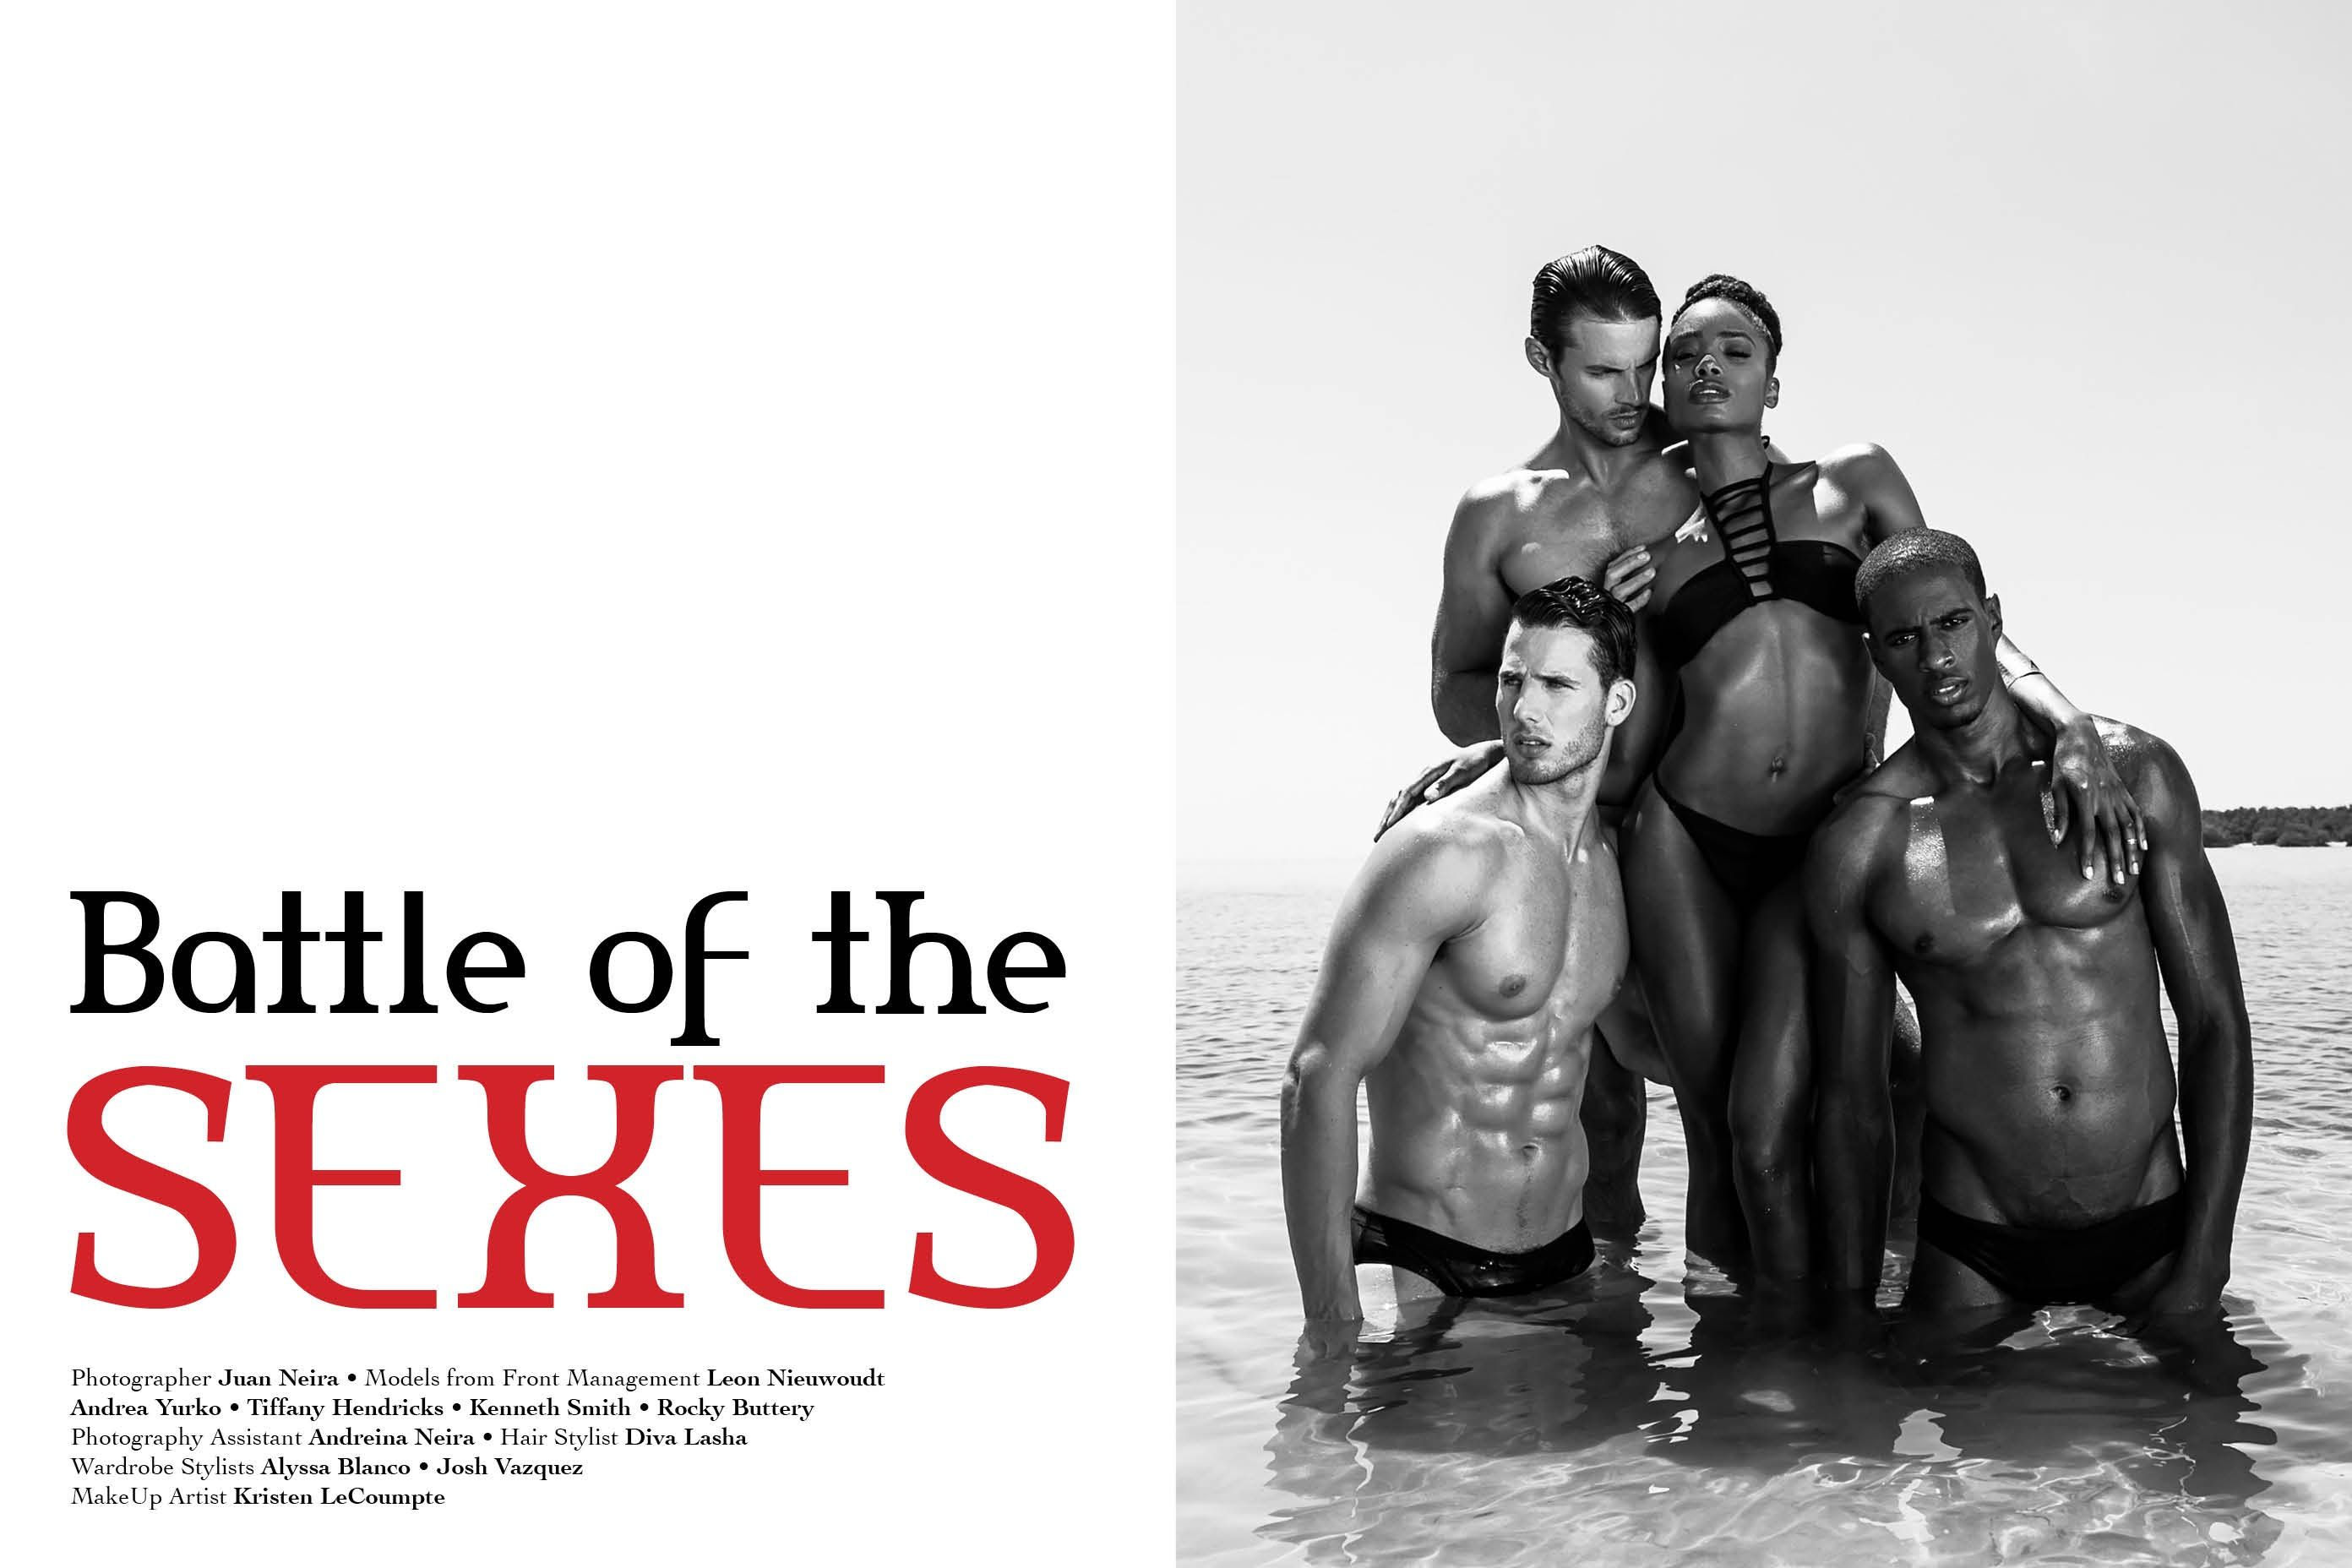 Battle of the Sexes Editorial for Ellements Magazine, Photographed by Juan Neira, models from Front Management